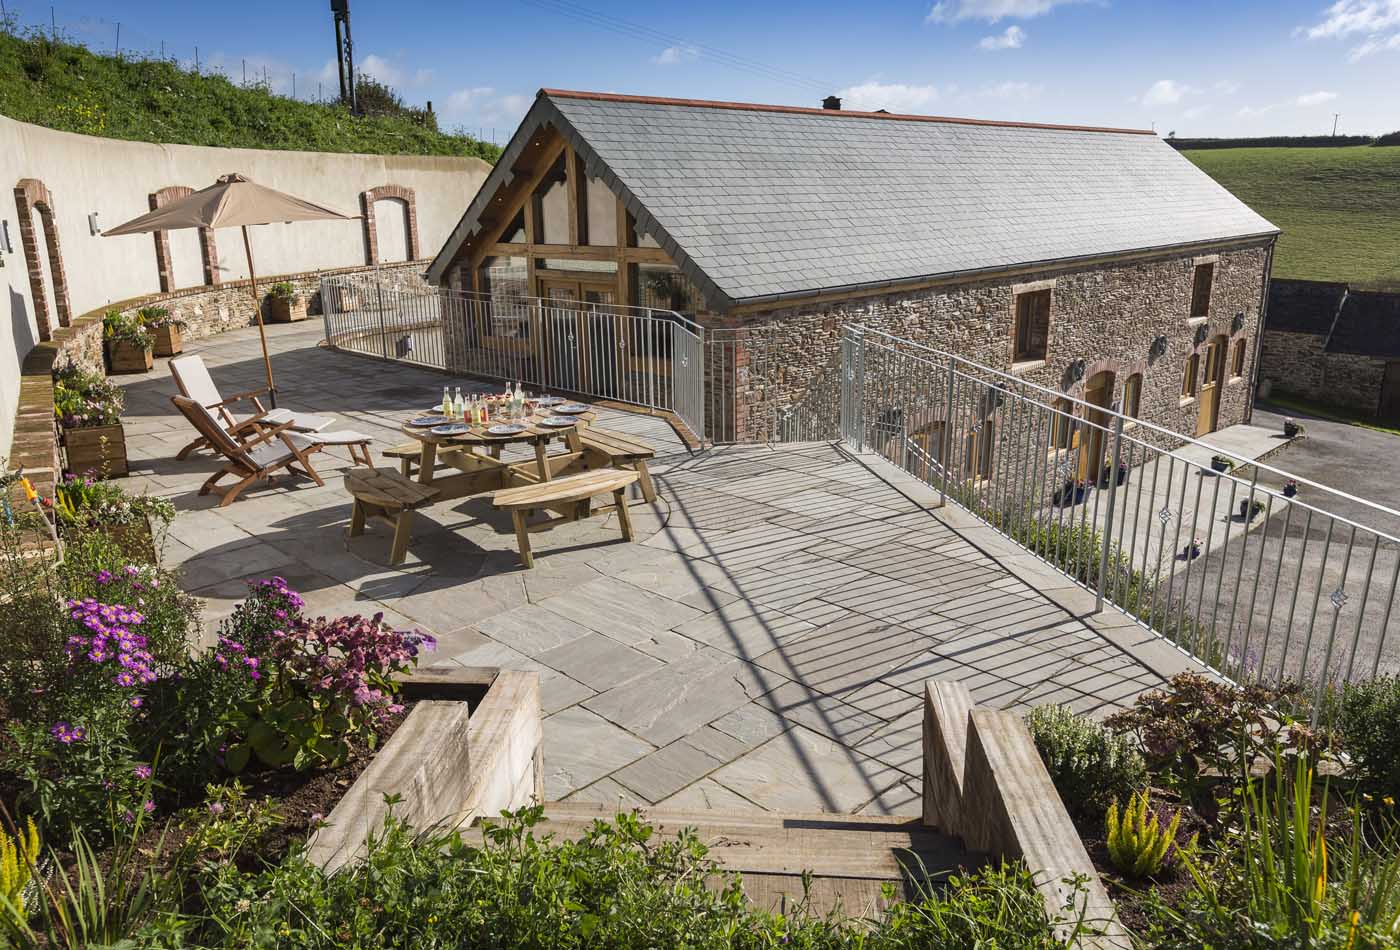 Butterwell Barn applies eco-friendly measures